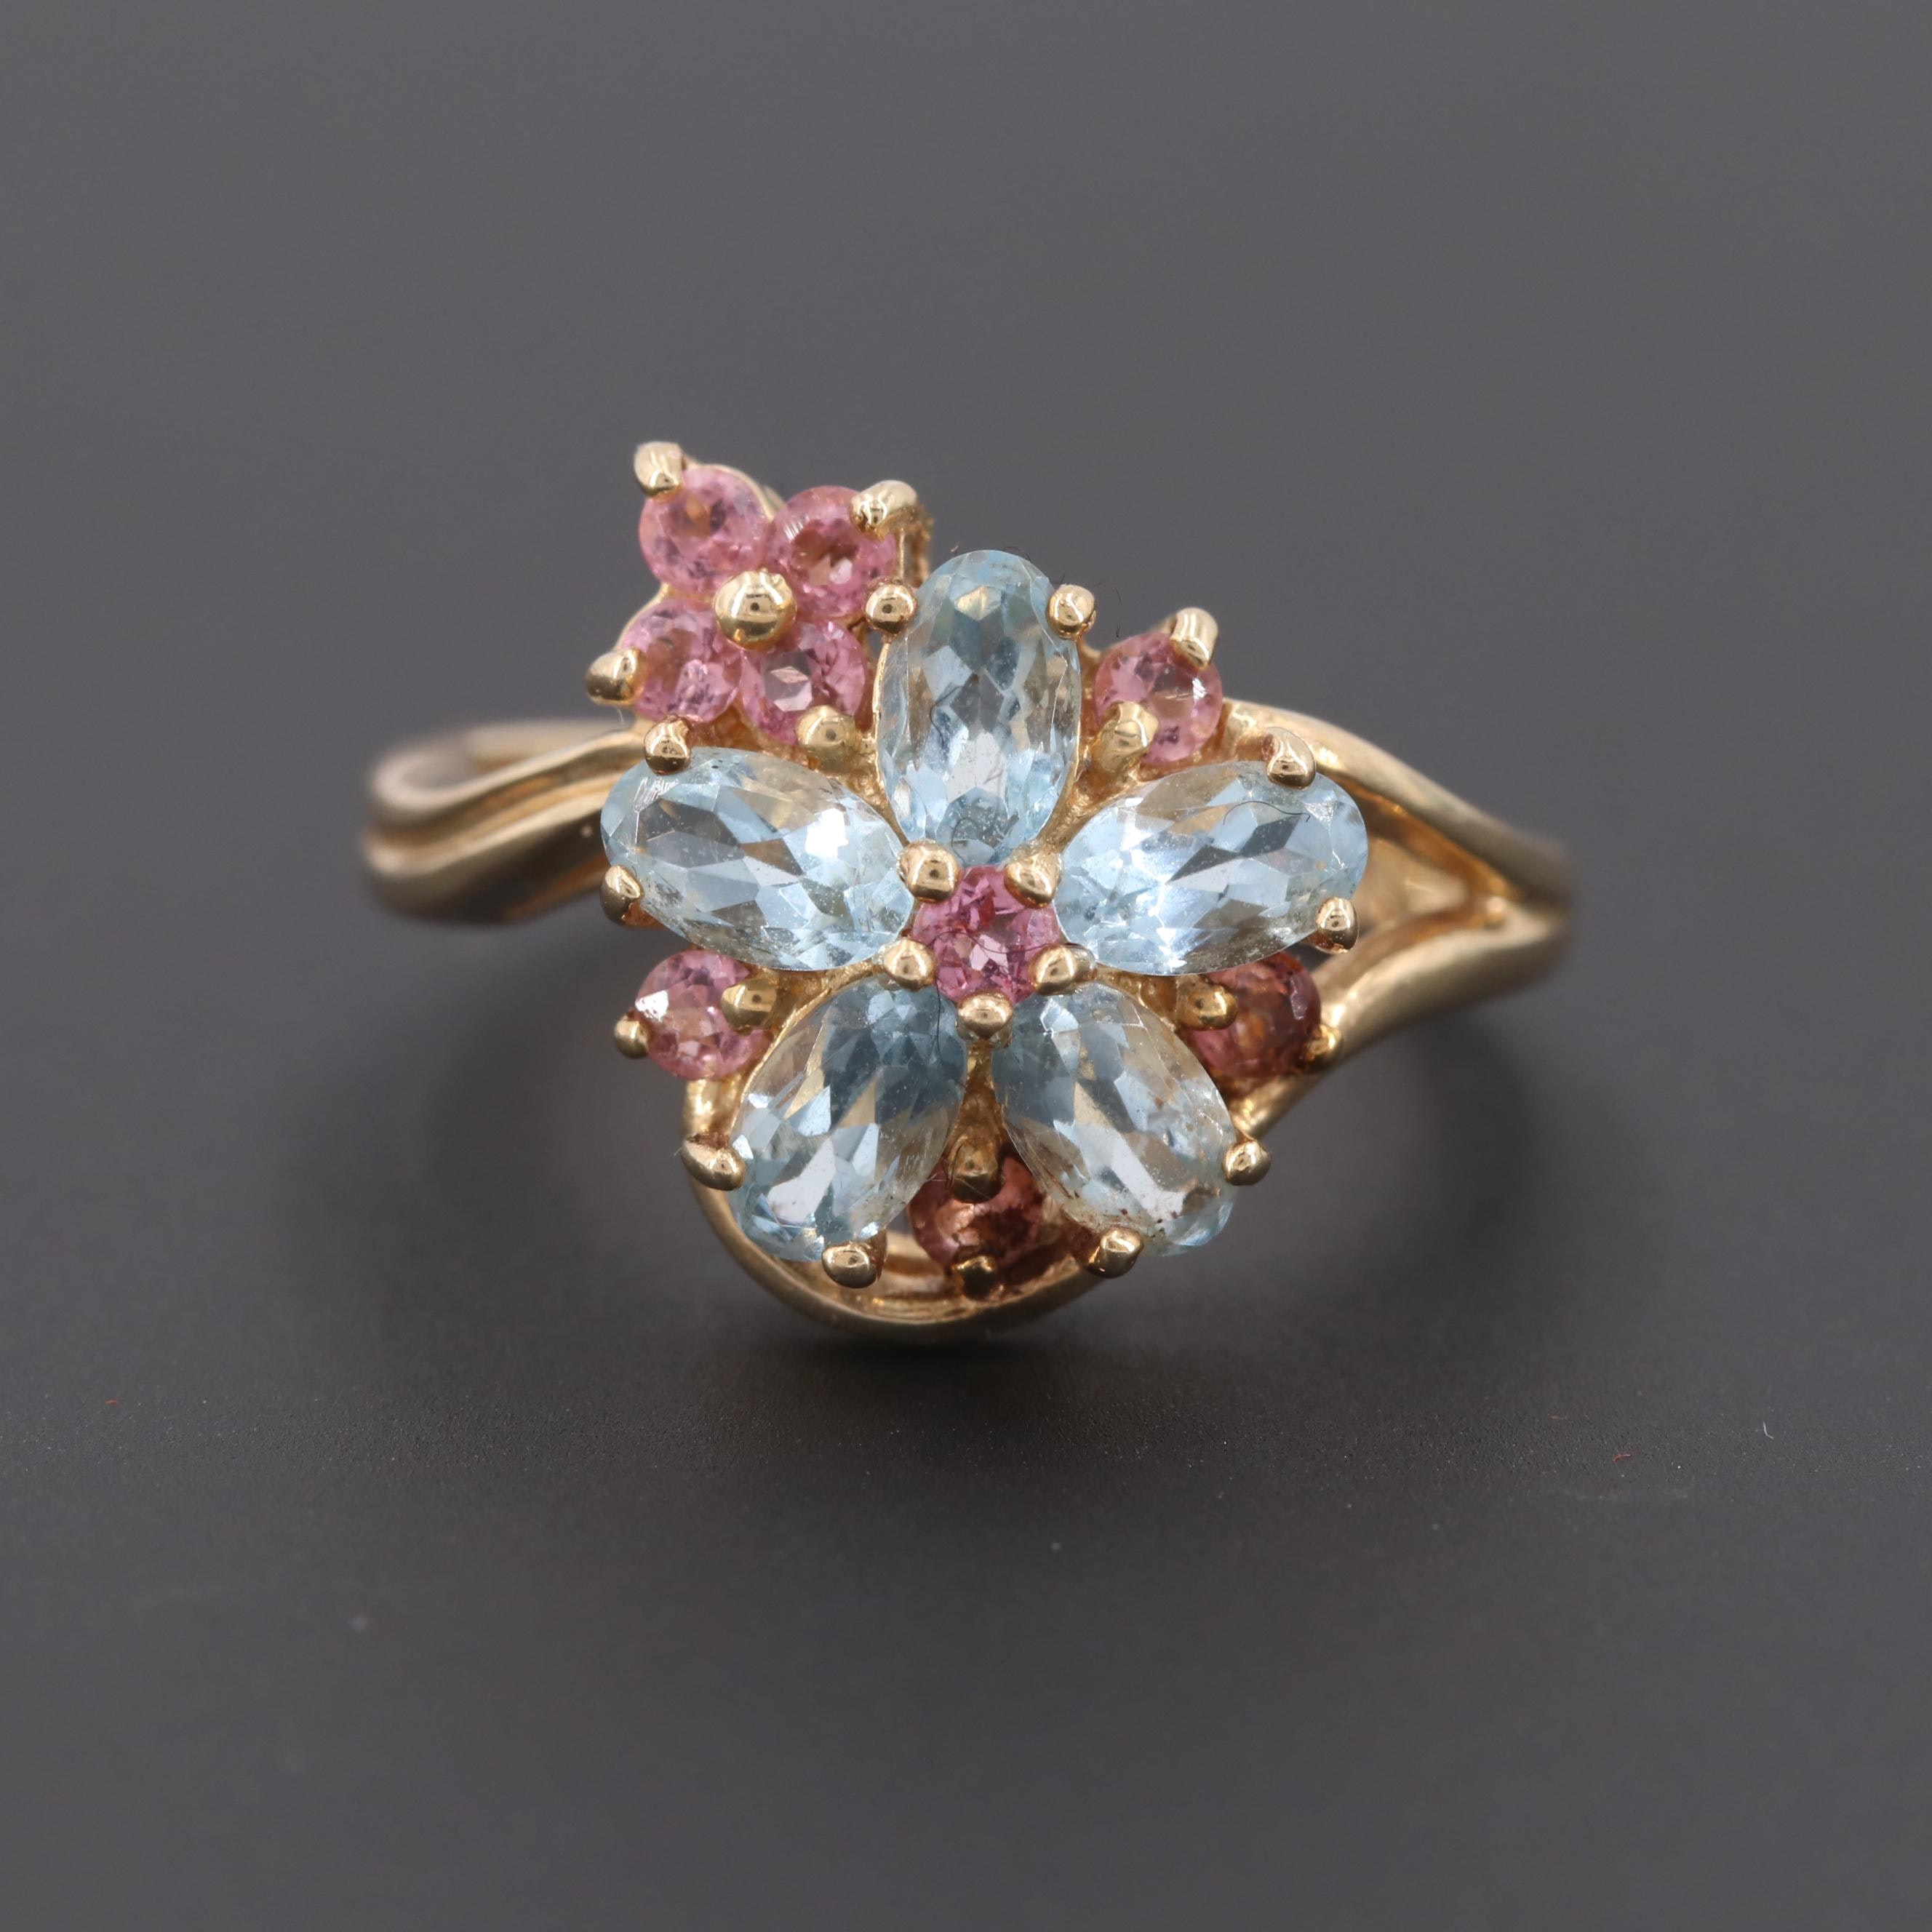 10K Yellow Gold Aquamarine and Pink Tourmaline Ring